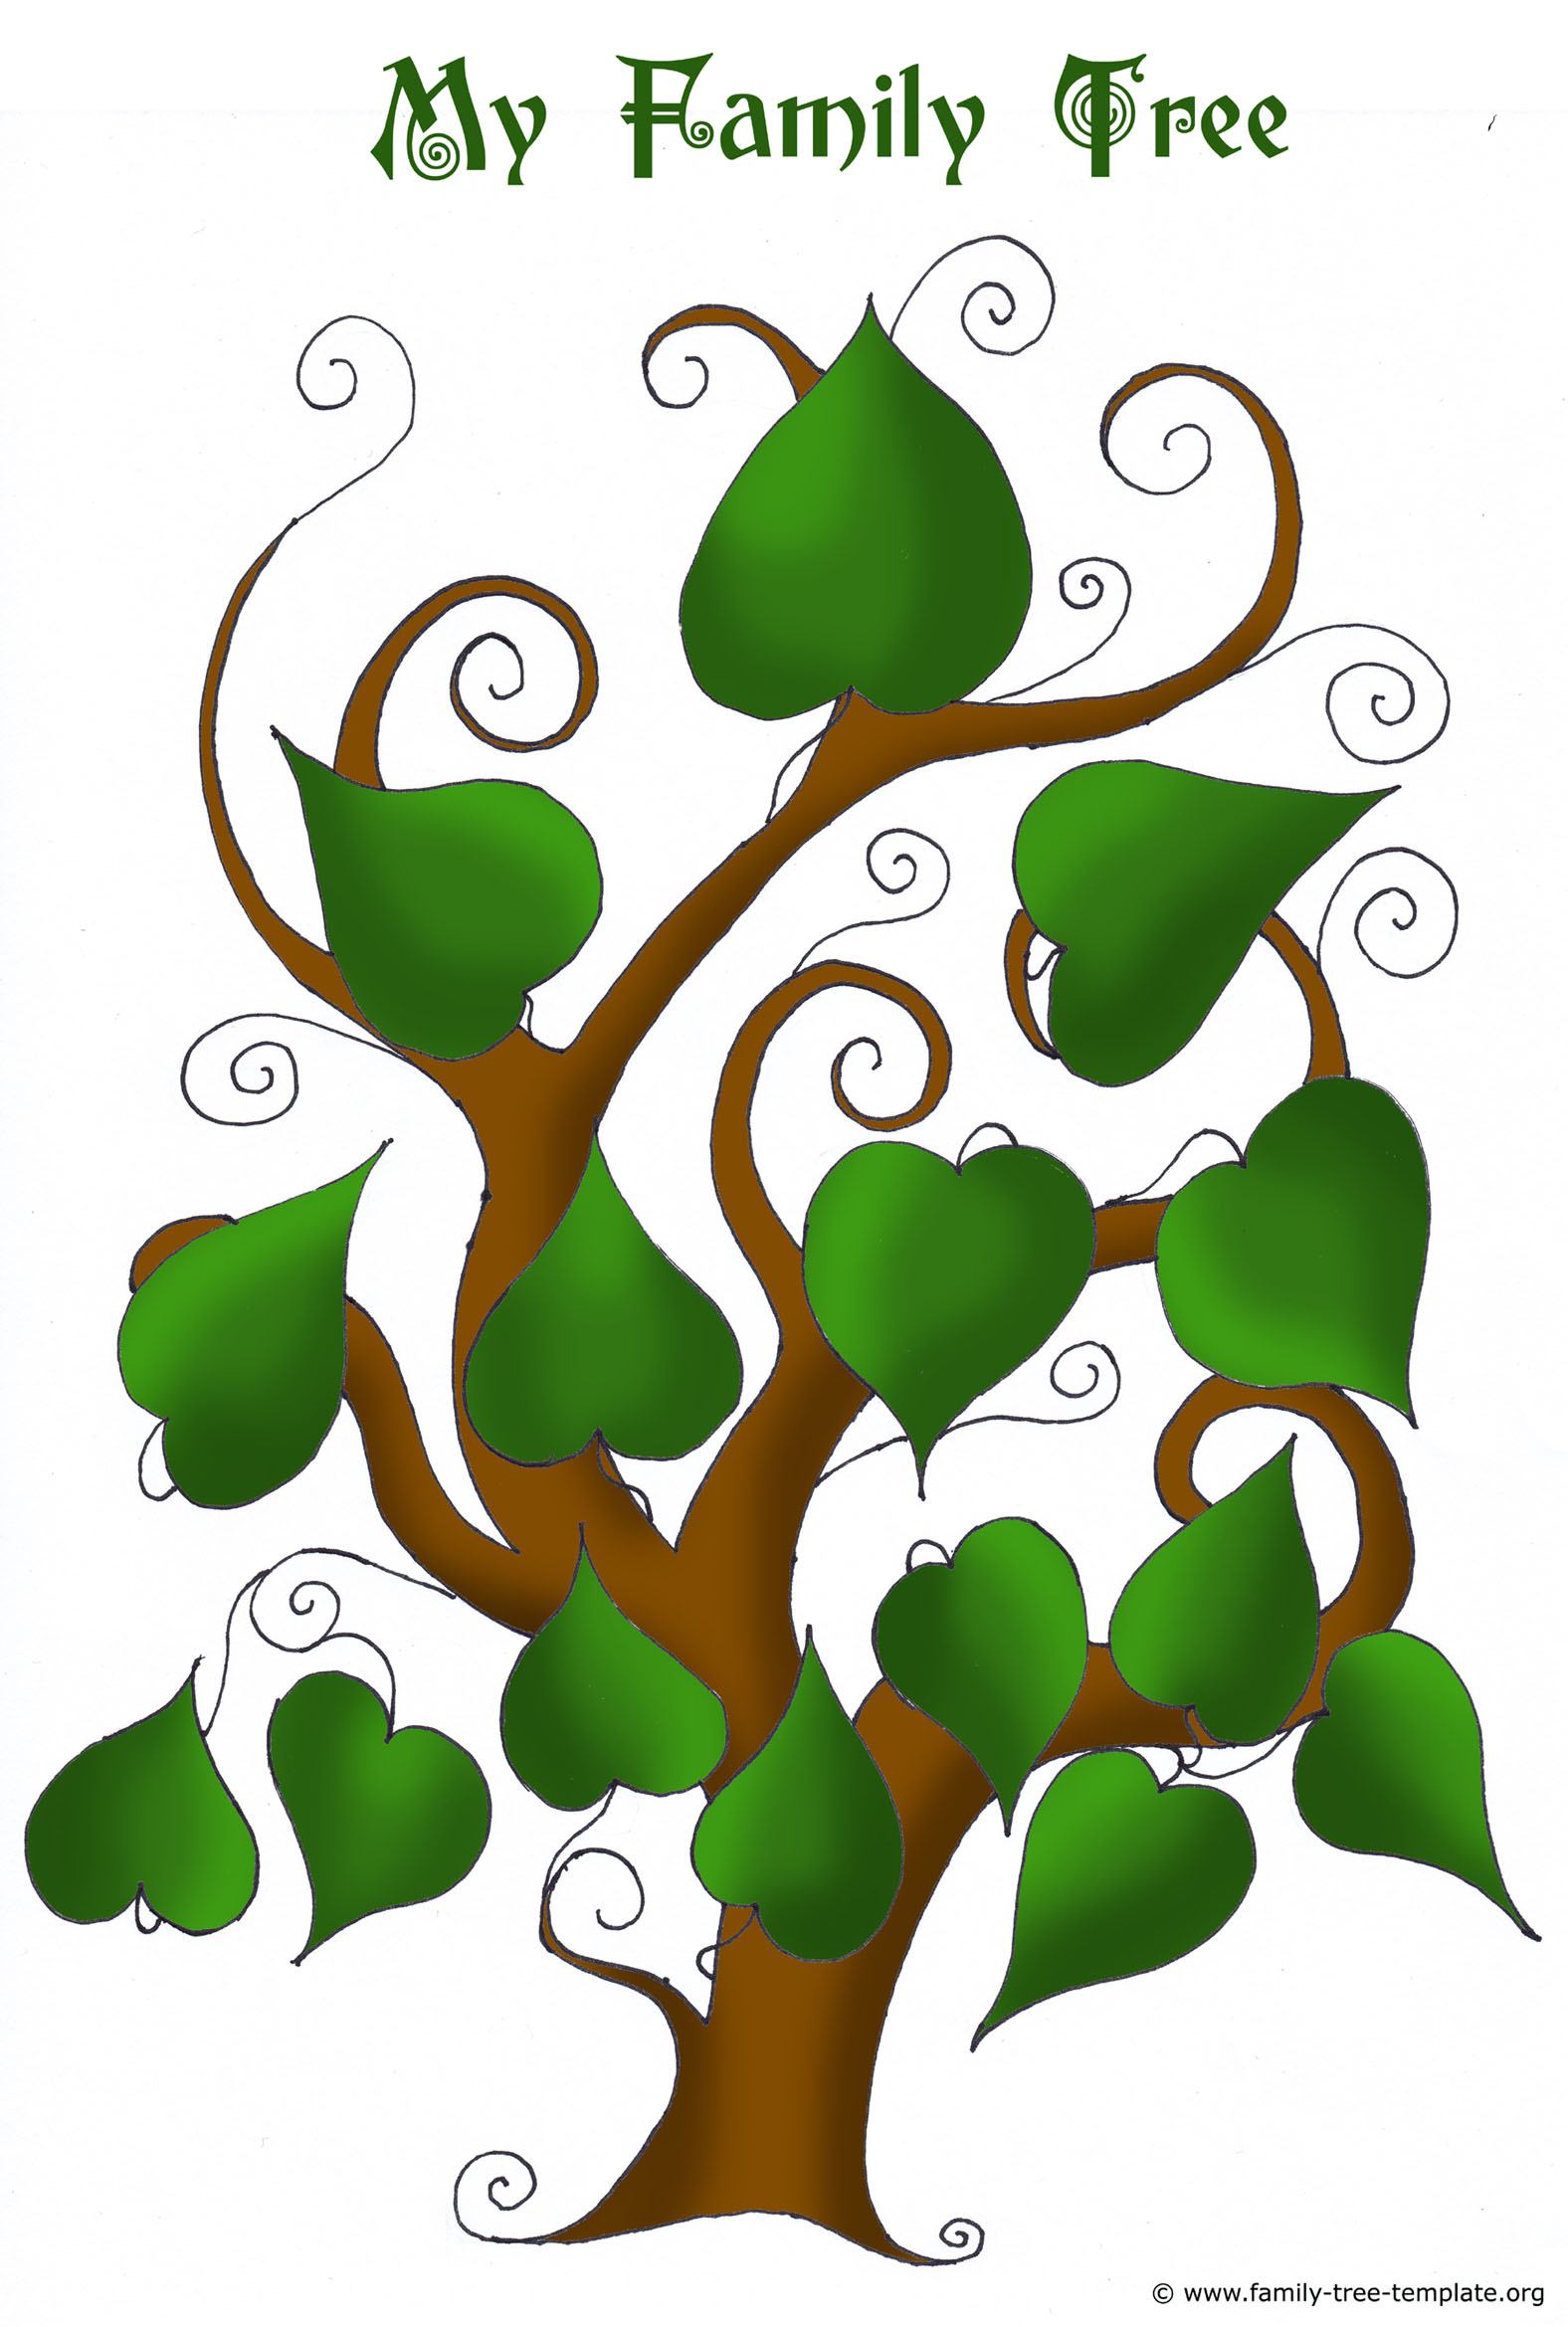 Free family tree templates using free ancestry for Genealogy templates for family trees